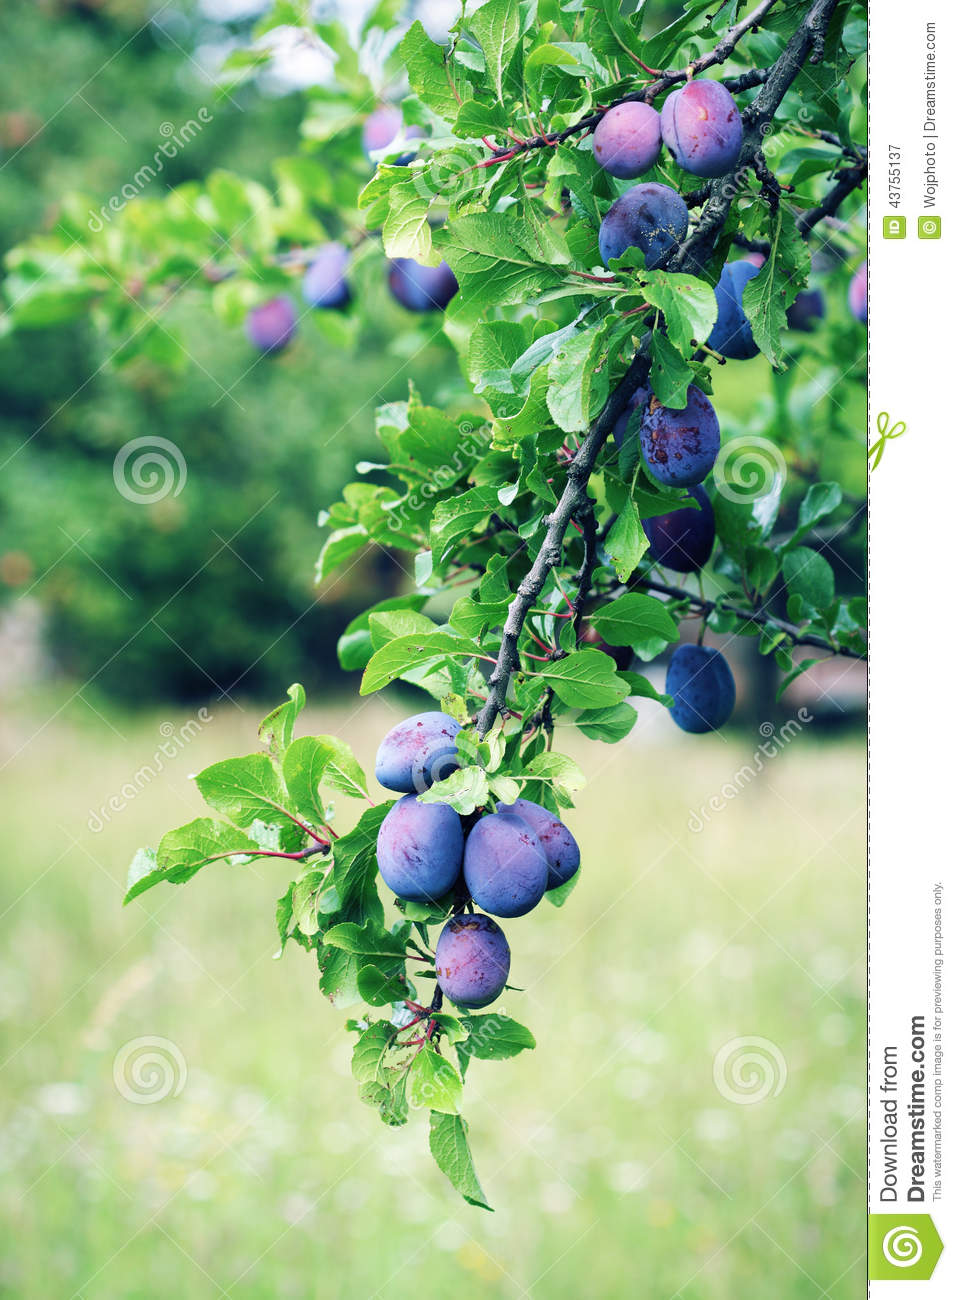 Plum Tree Branch With Blue Plums Stock Photo